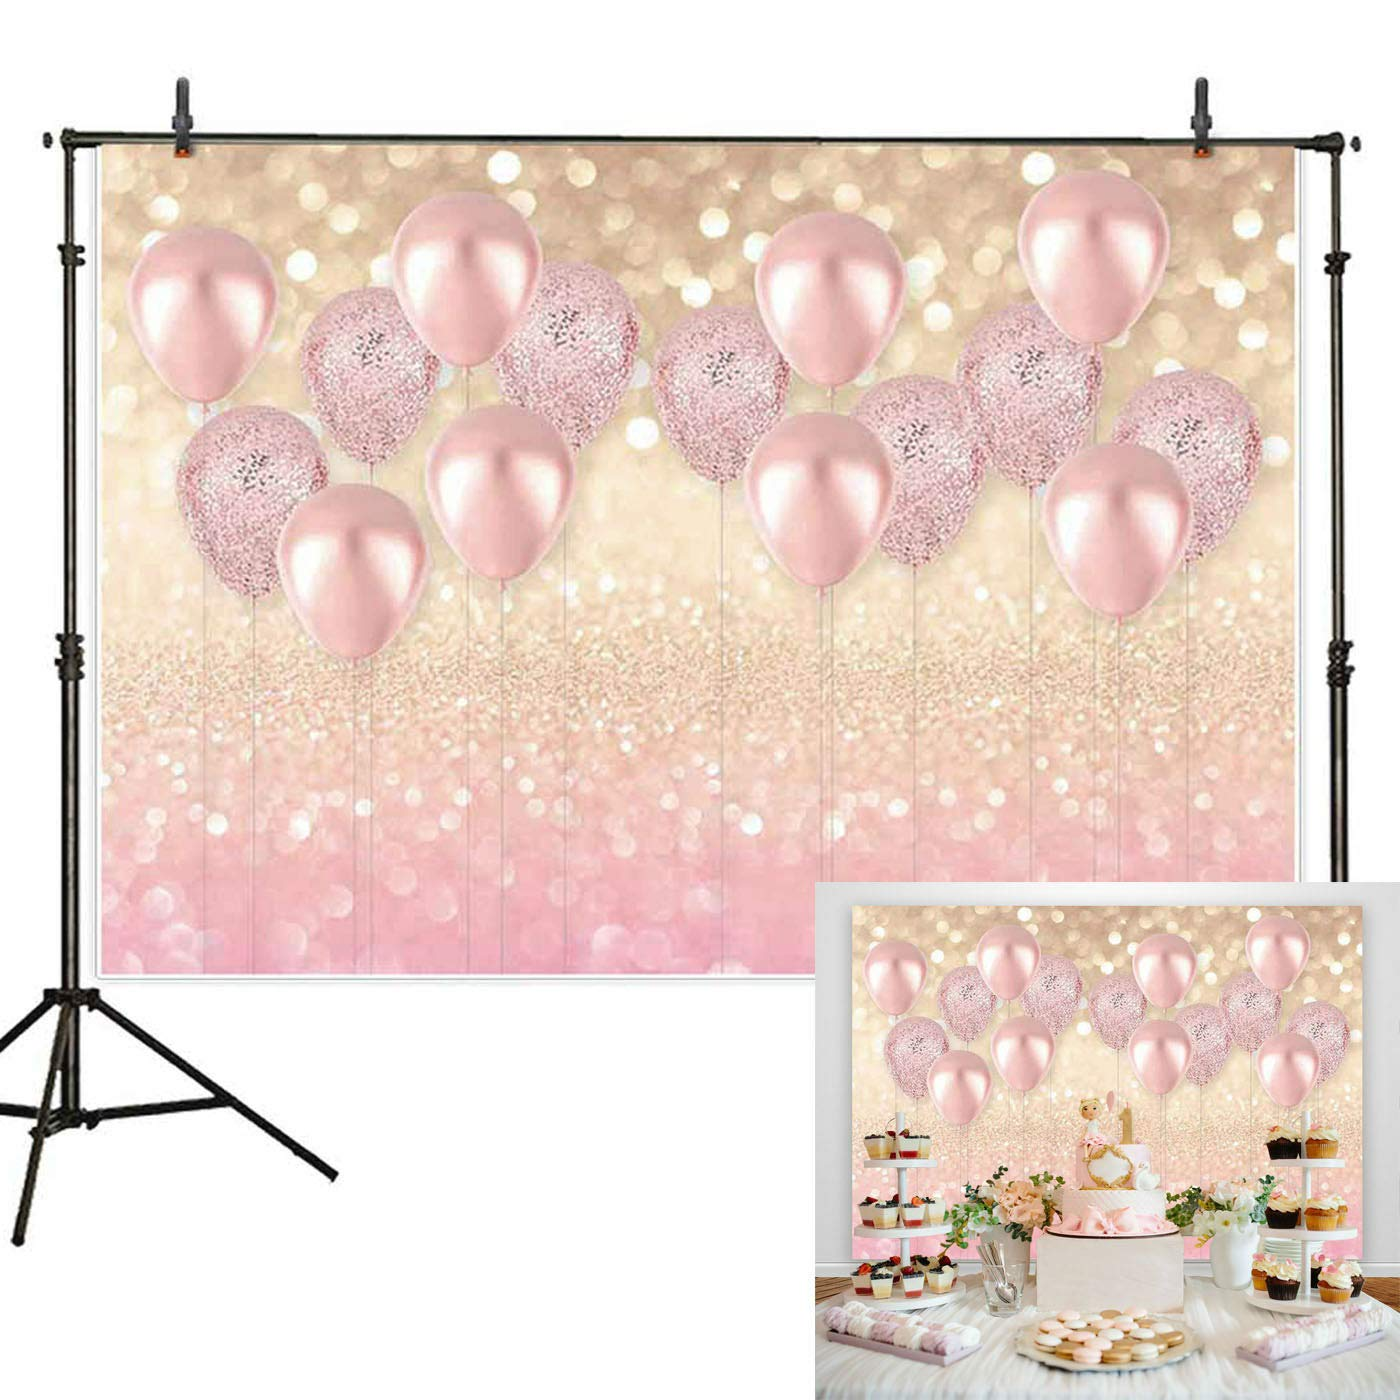 7x5ft Durable/Soft Fabric Rose Gold Party Decorations Pink Balloon Gold Glittter Bokeh Photo Backdrop for Birthday Baby Bridal Shower Bachelorette Party Supplies Photography Background Studio Props by Haboke